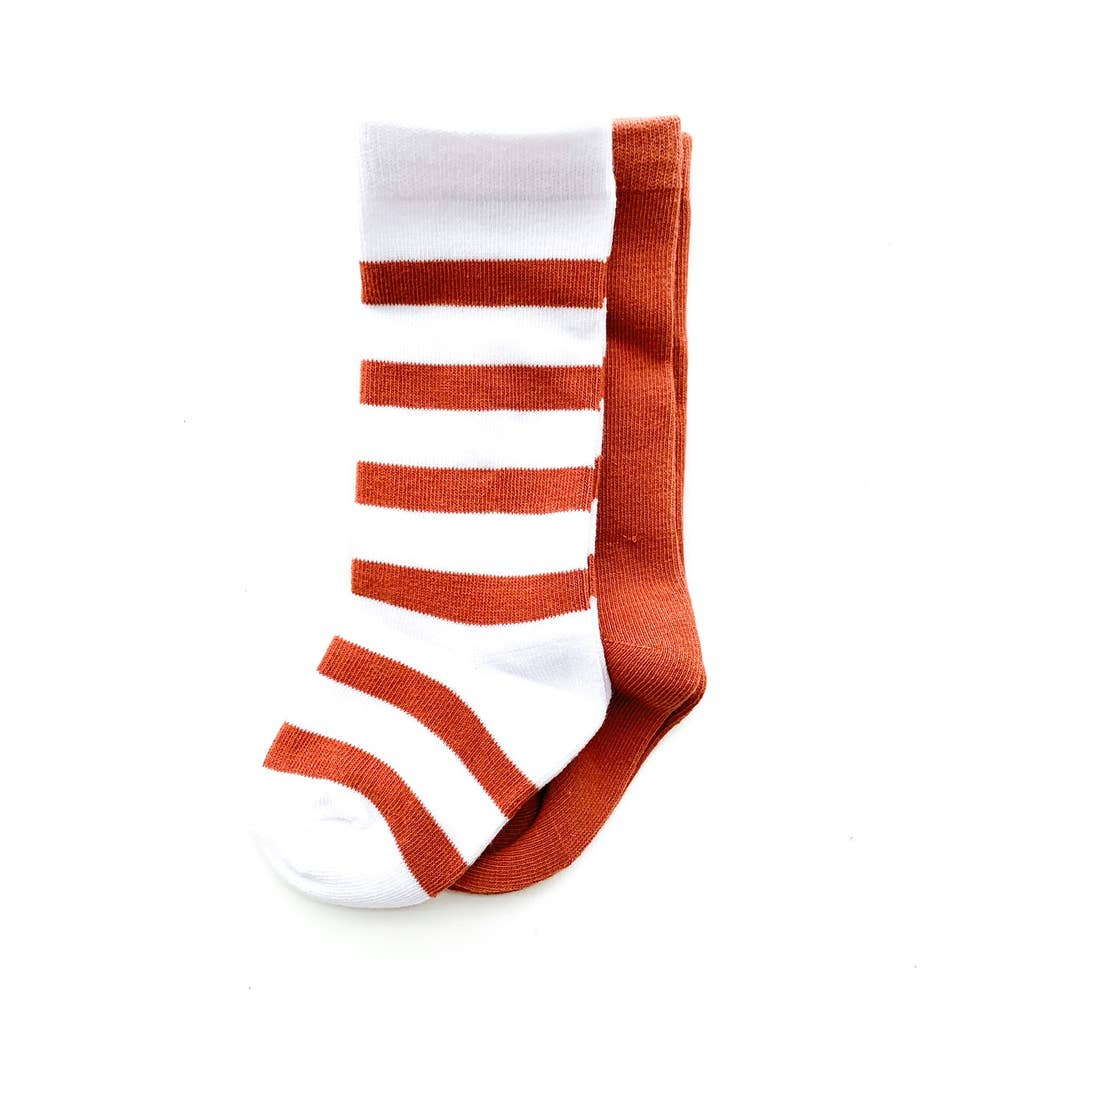 The Knee High Sock | 2-pack - Rust